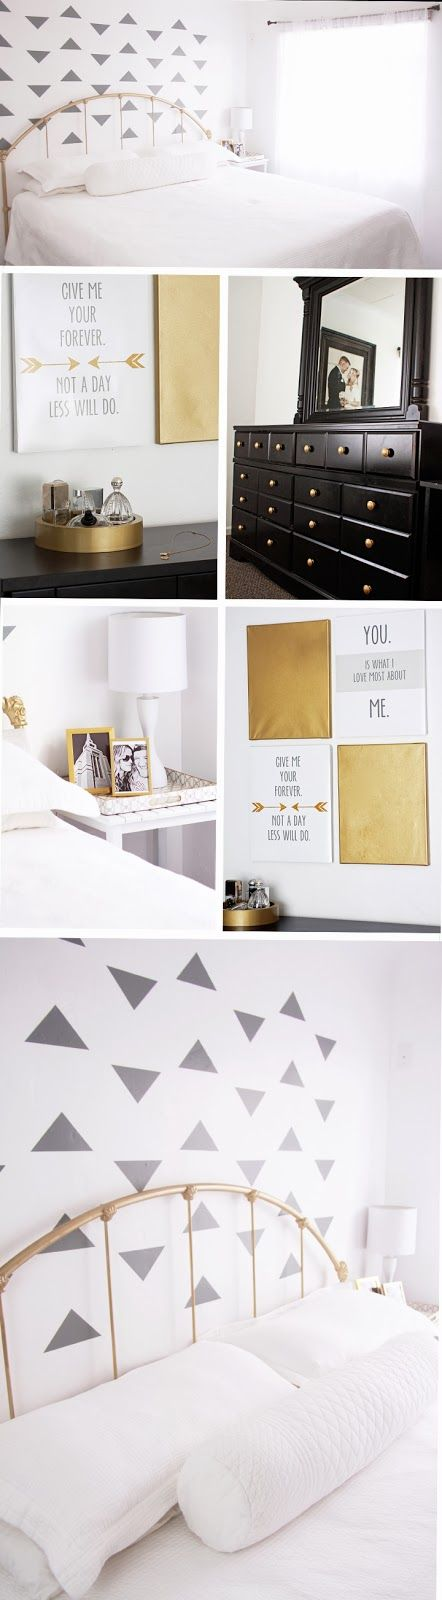 camie shill triangle wall grey triangles gold white black gold bed white bedroom black dresser